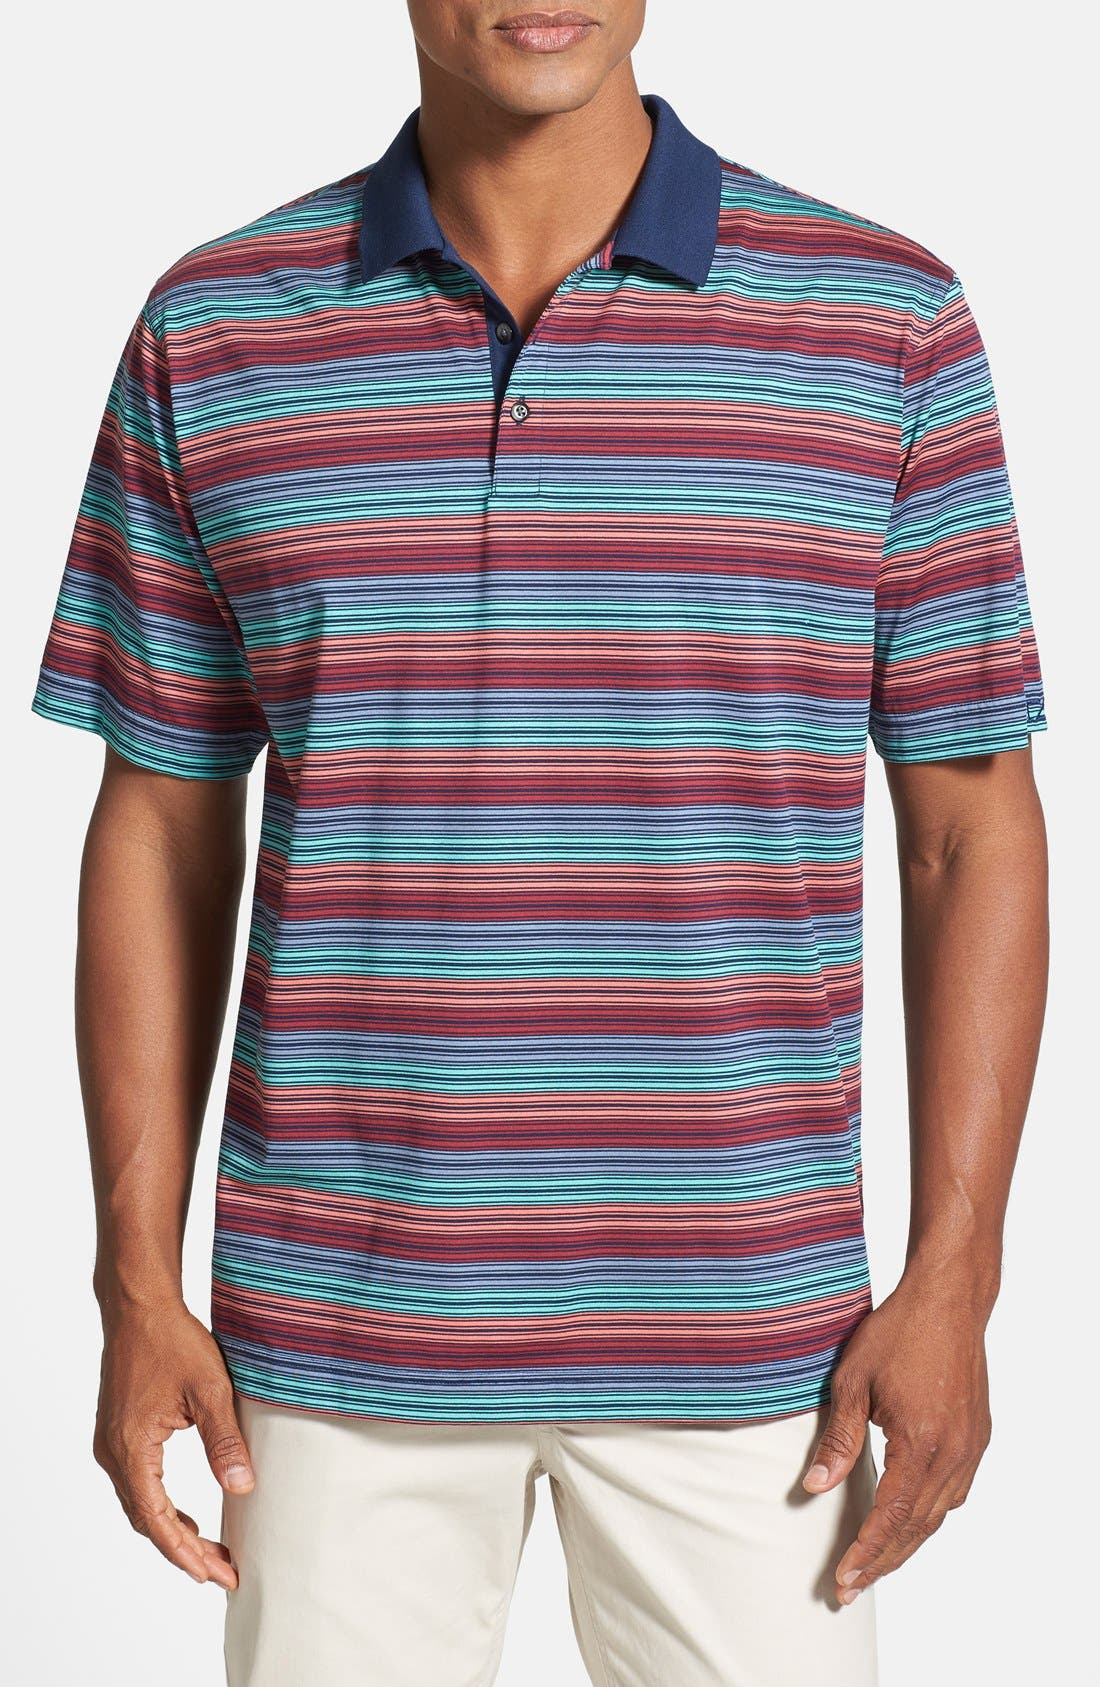 Main Image - Cutter & Buck '70/2's Andrew' Performance Stripe Polo